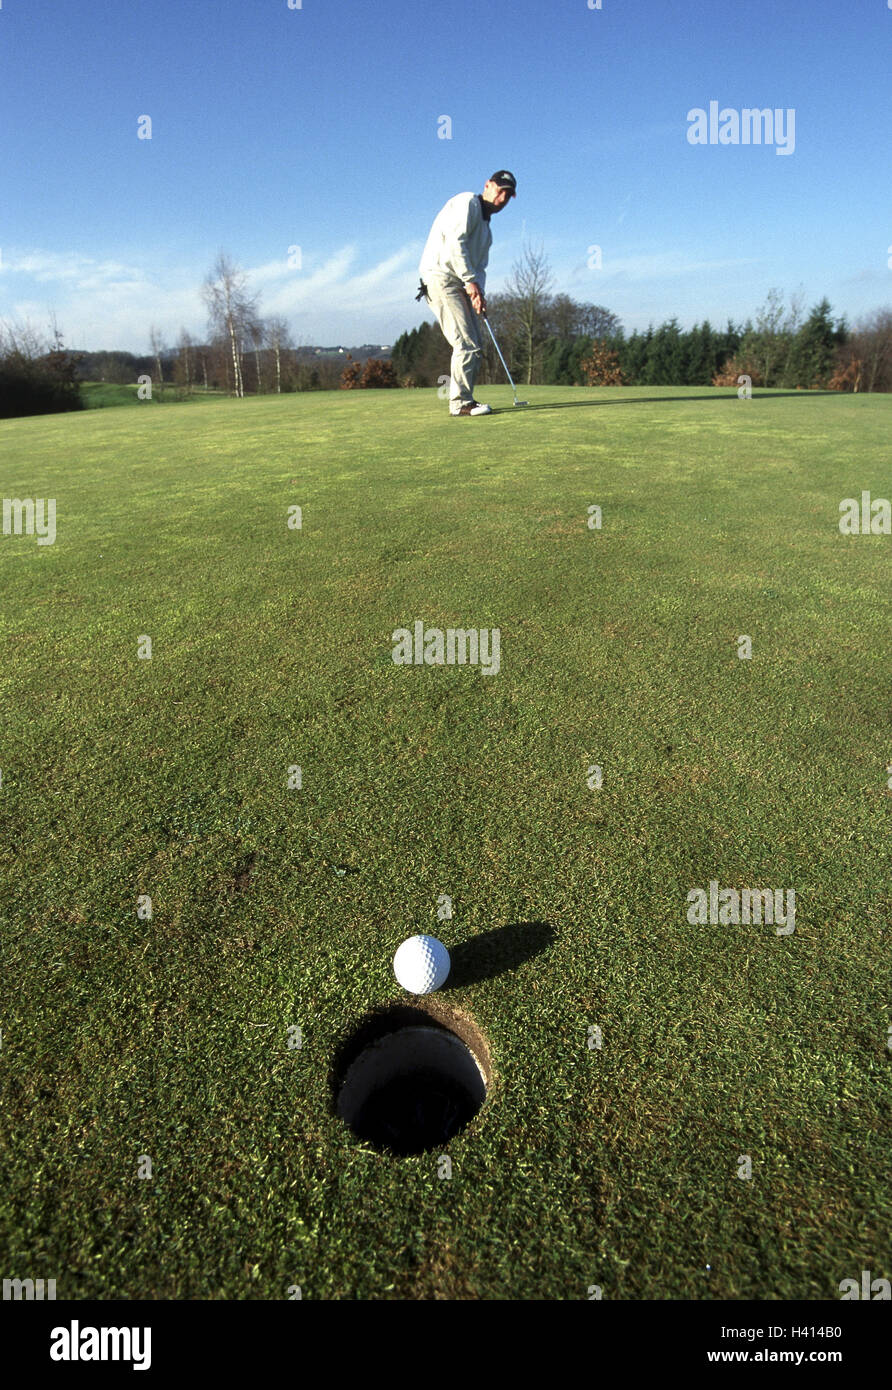 Golf course, golfer, putt, no model put in clink release man, to golfs, Golf, Getting, hole, to Golf, concentration, - Stock Image